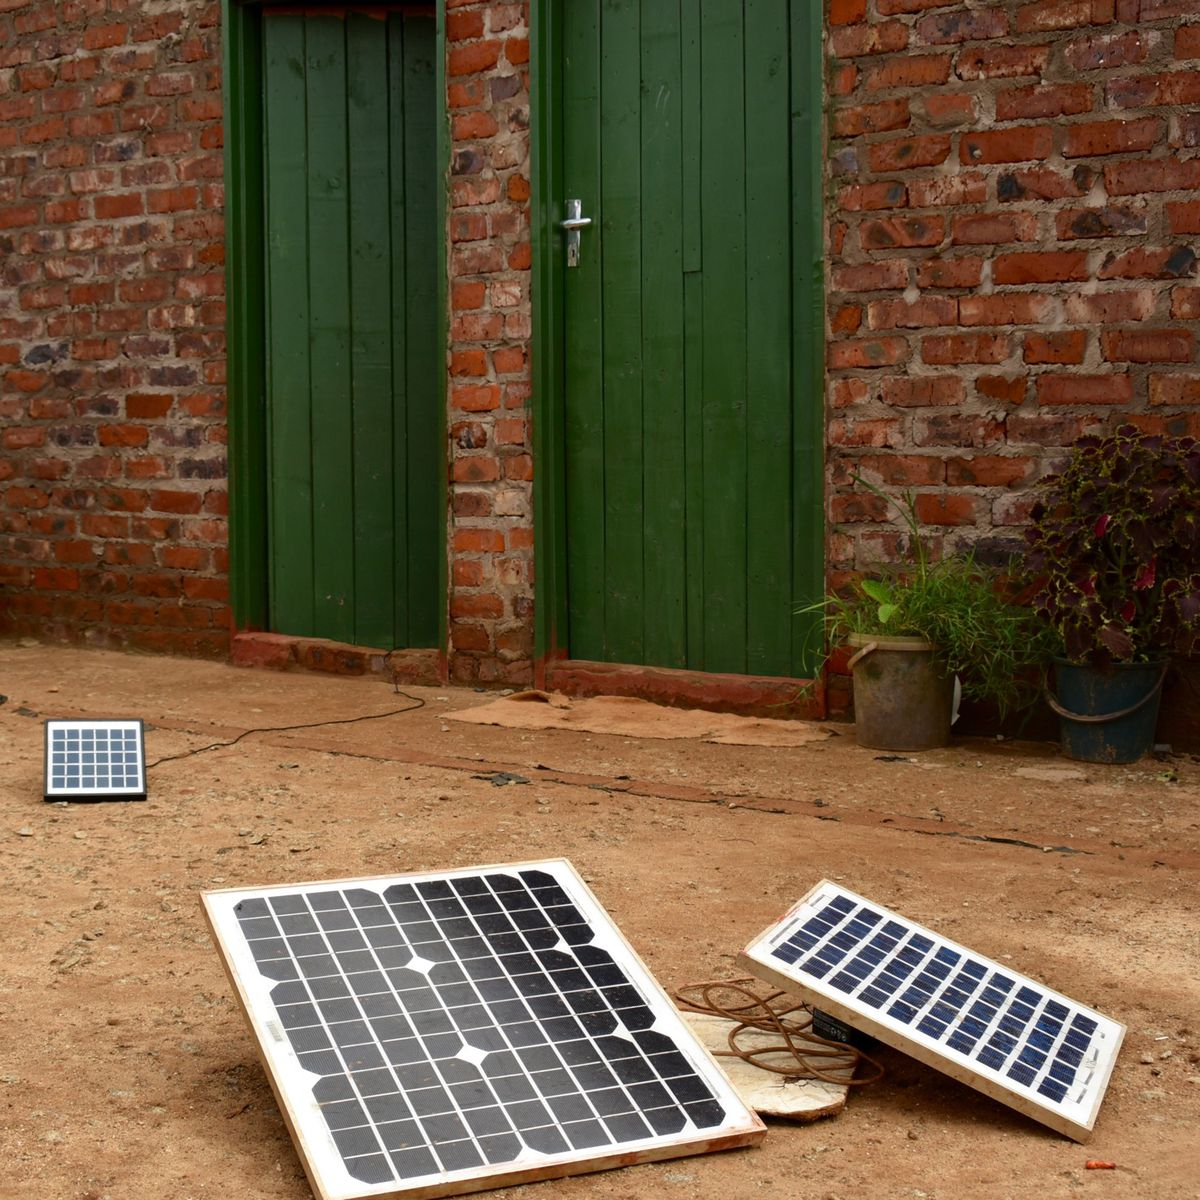 A trio of medium-sized solar panels strategically placed outside the doors of several homes sharing a courtyard